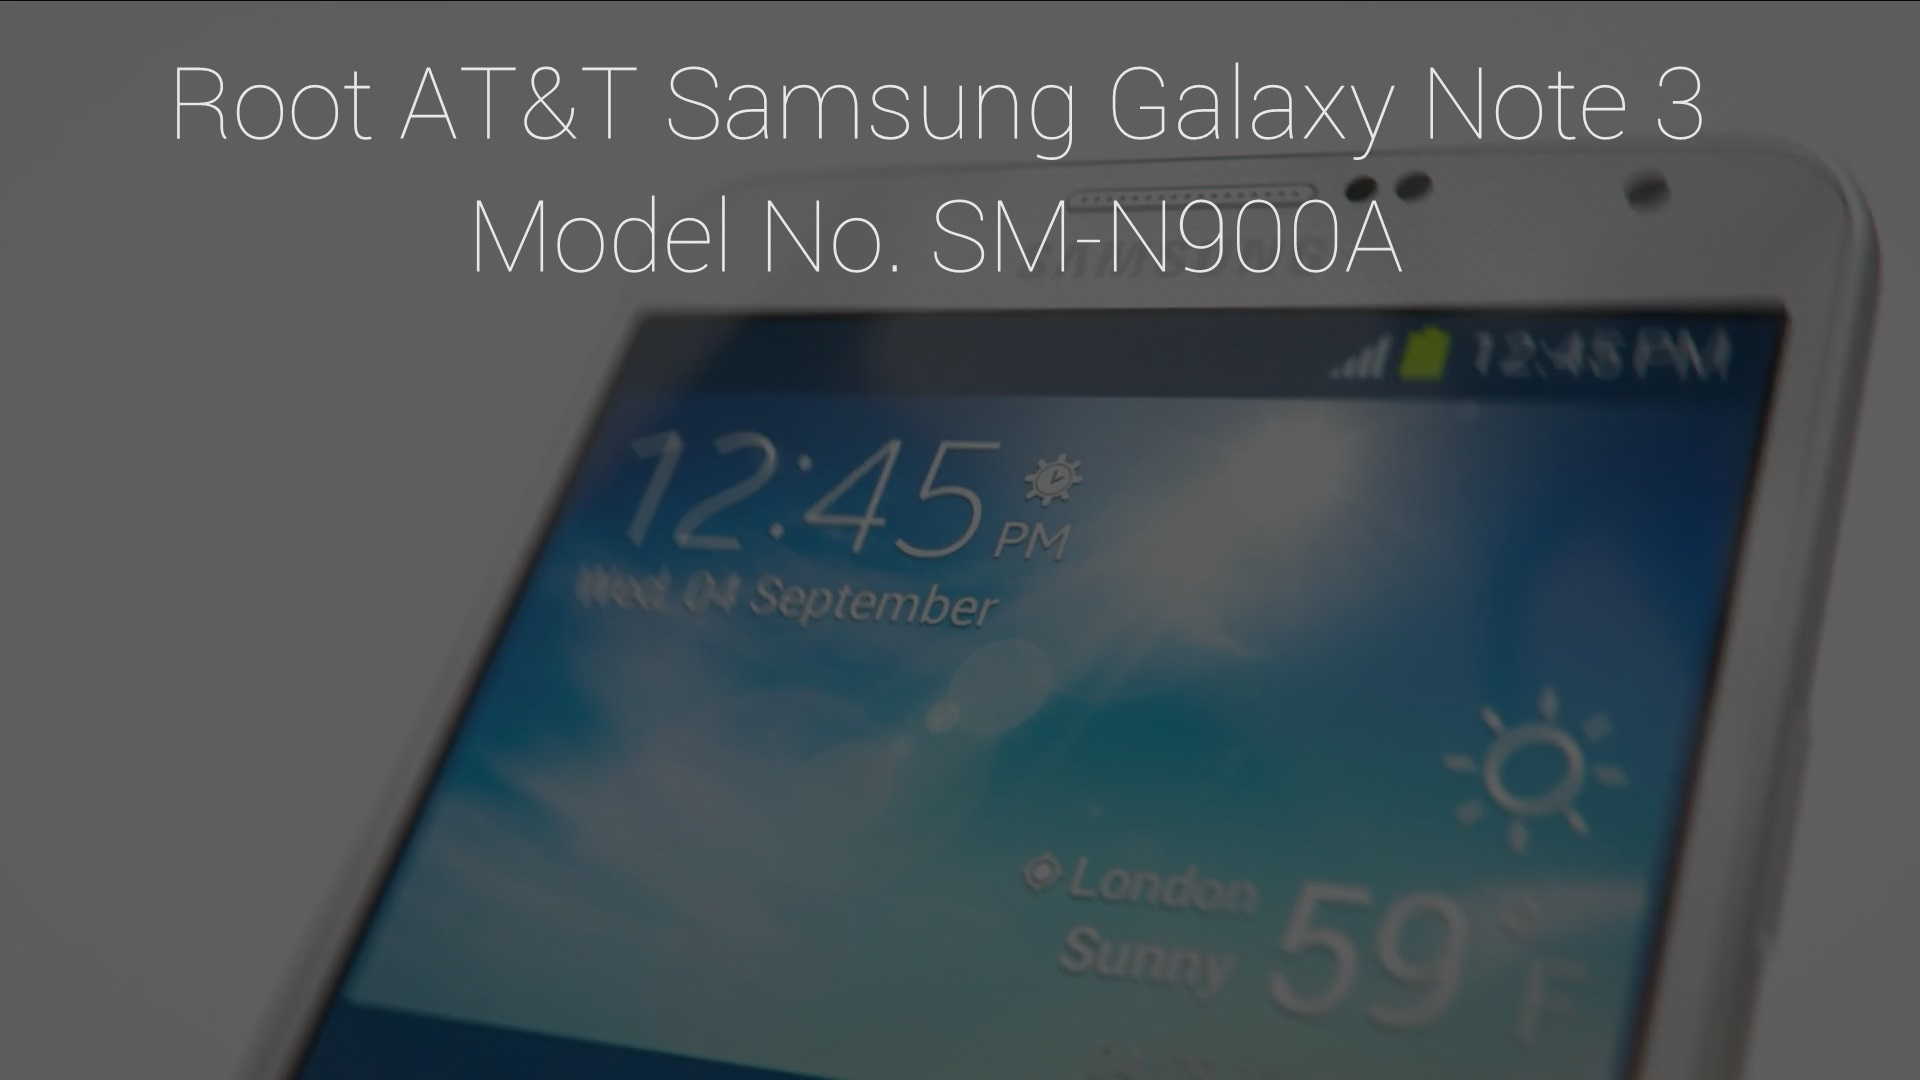 AT&T Galaxy Note 3